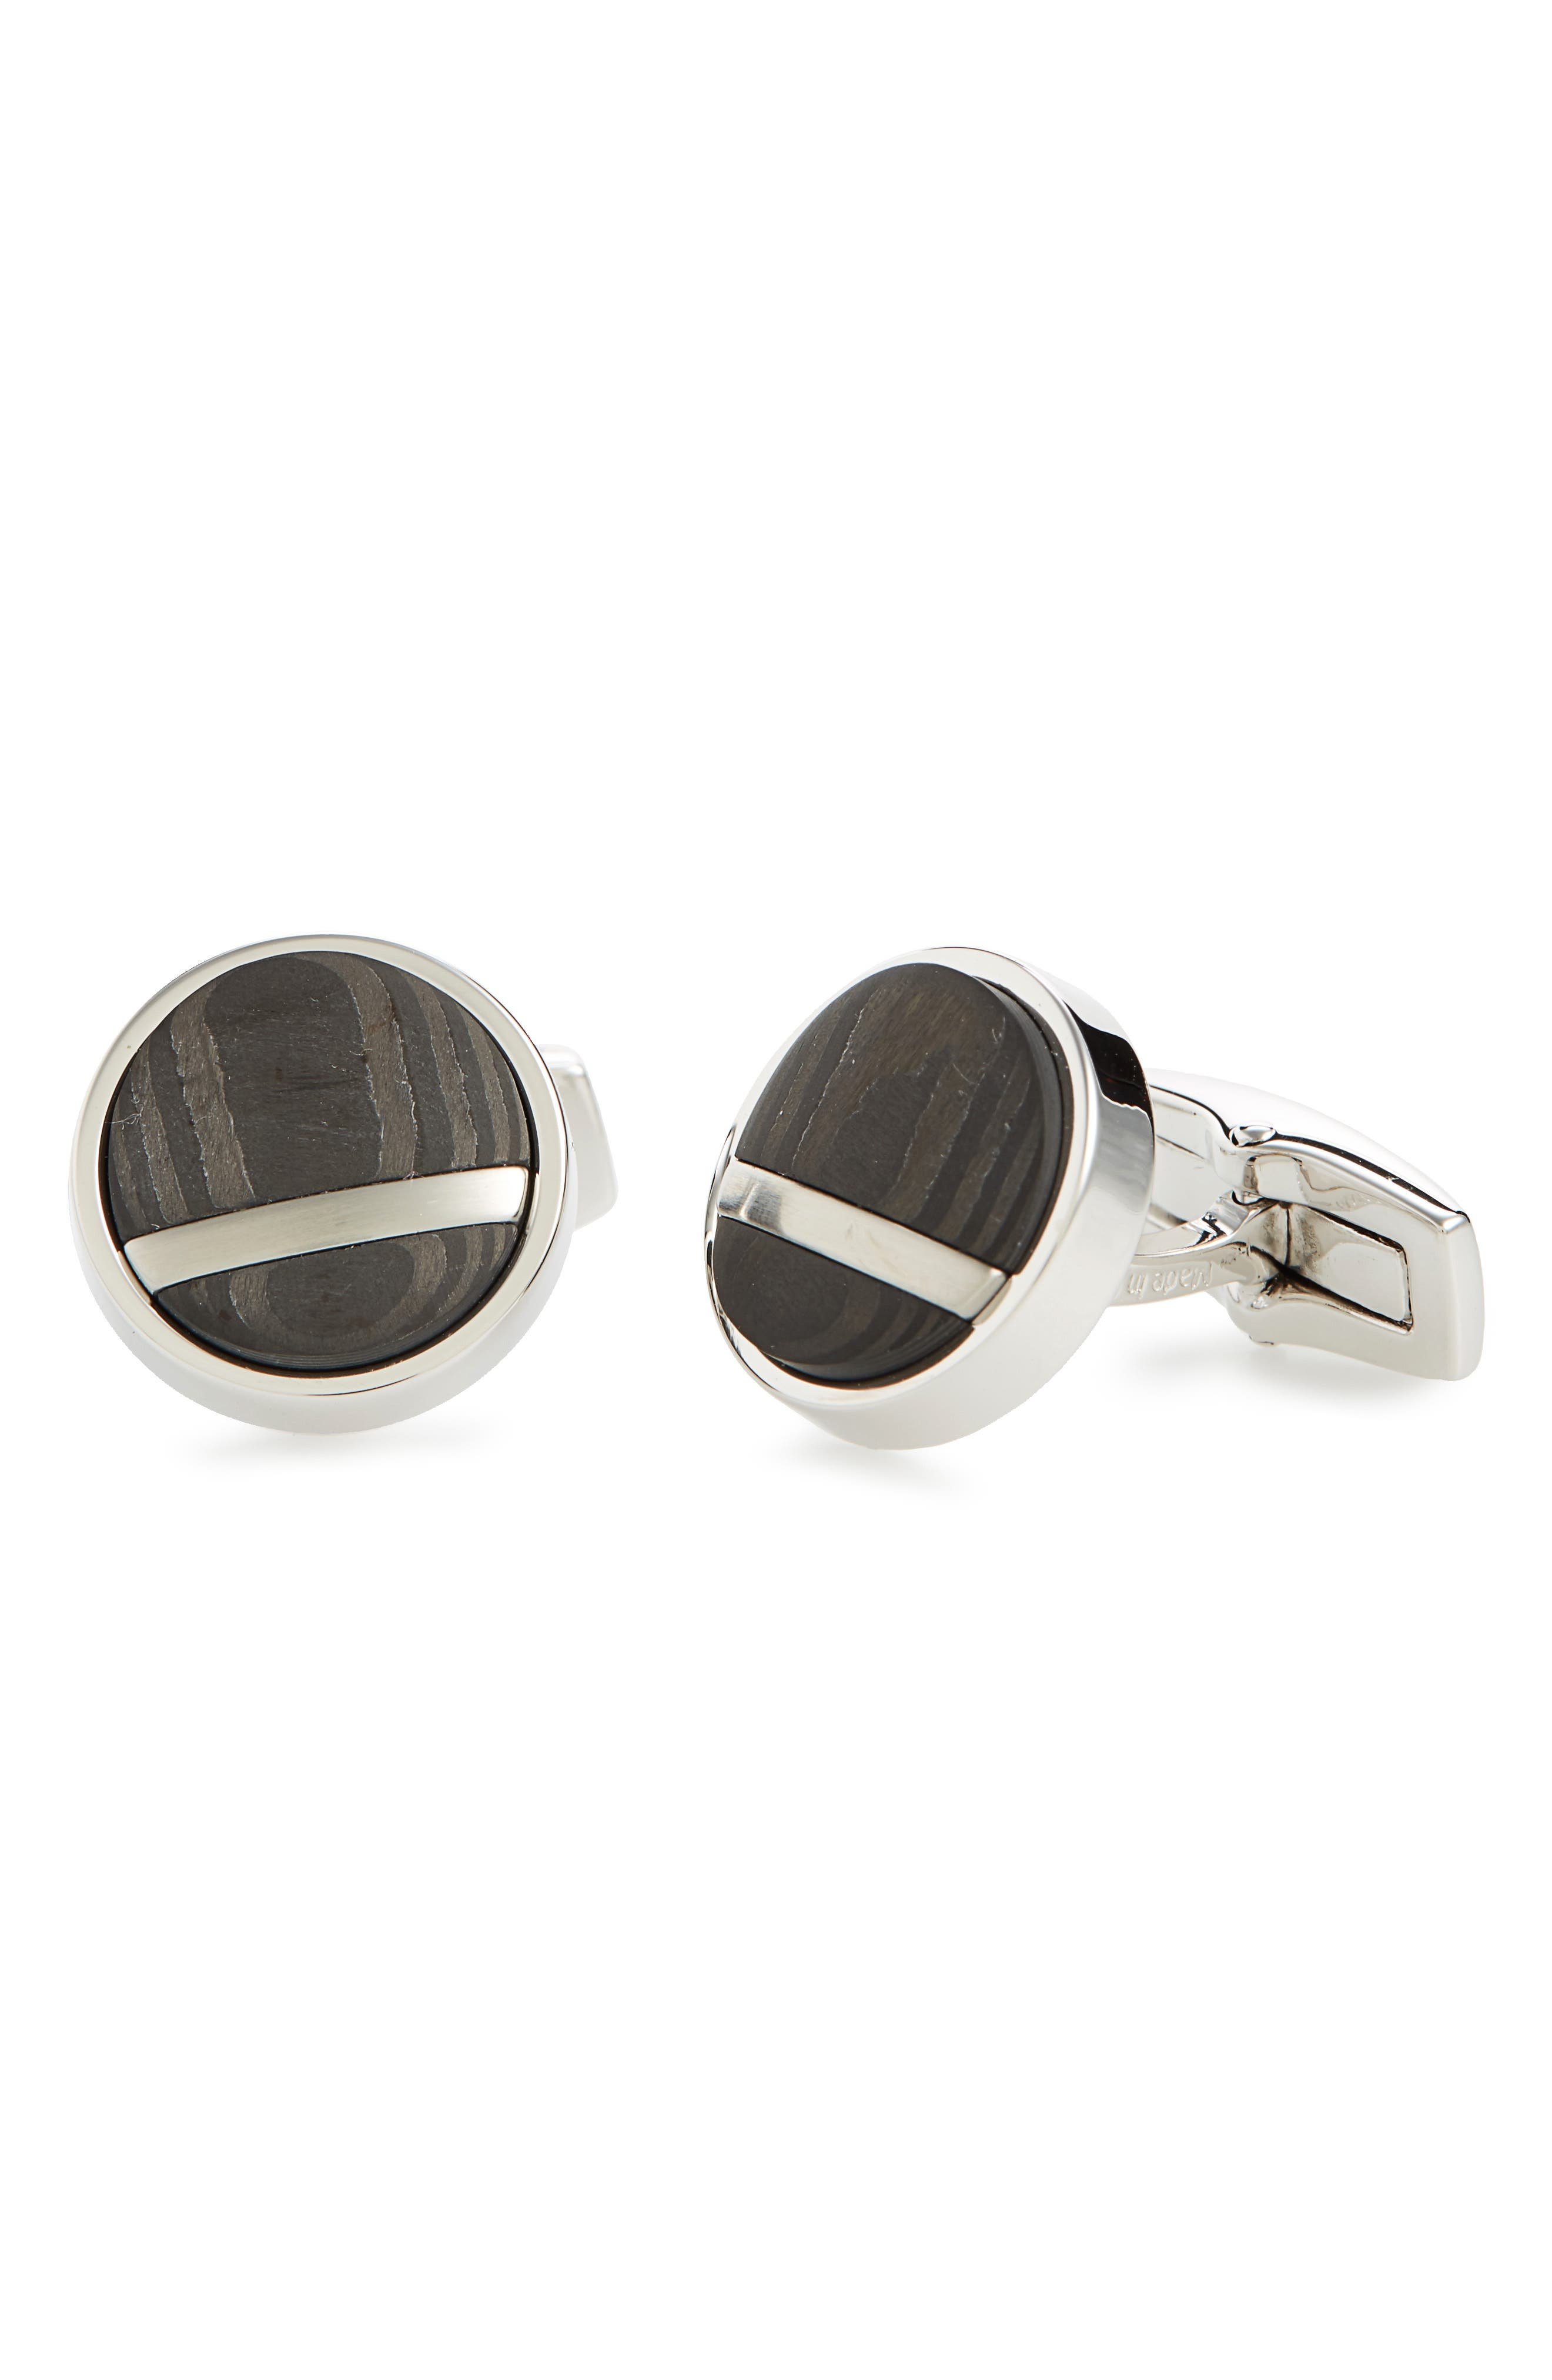 T-Ralph Round Cuff Links,                         Main,                         color, 021